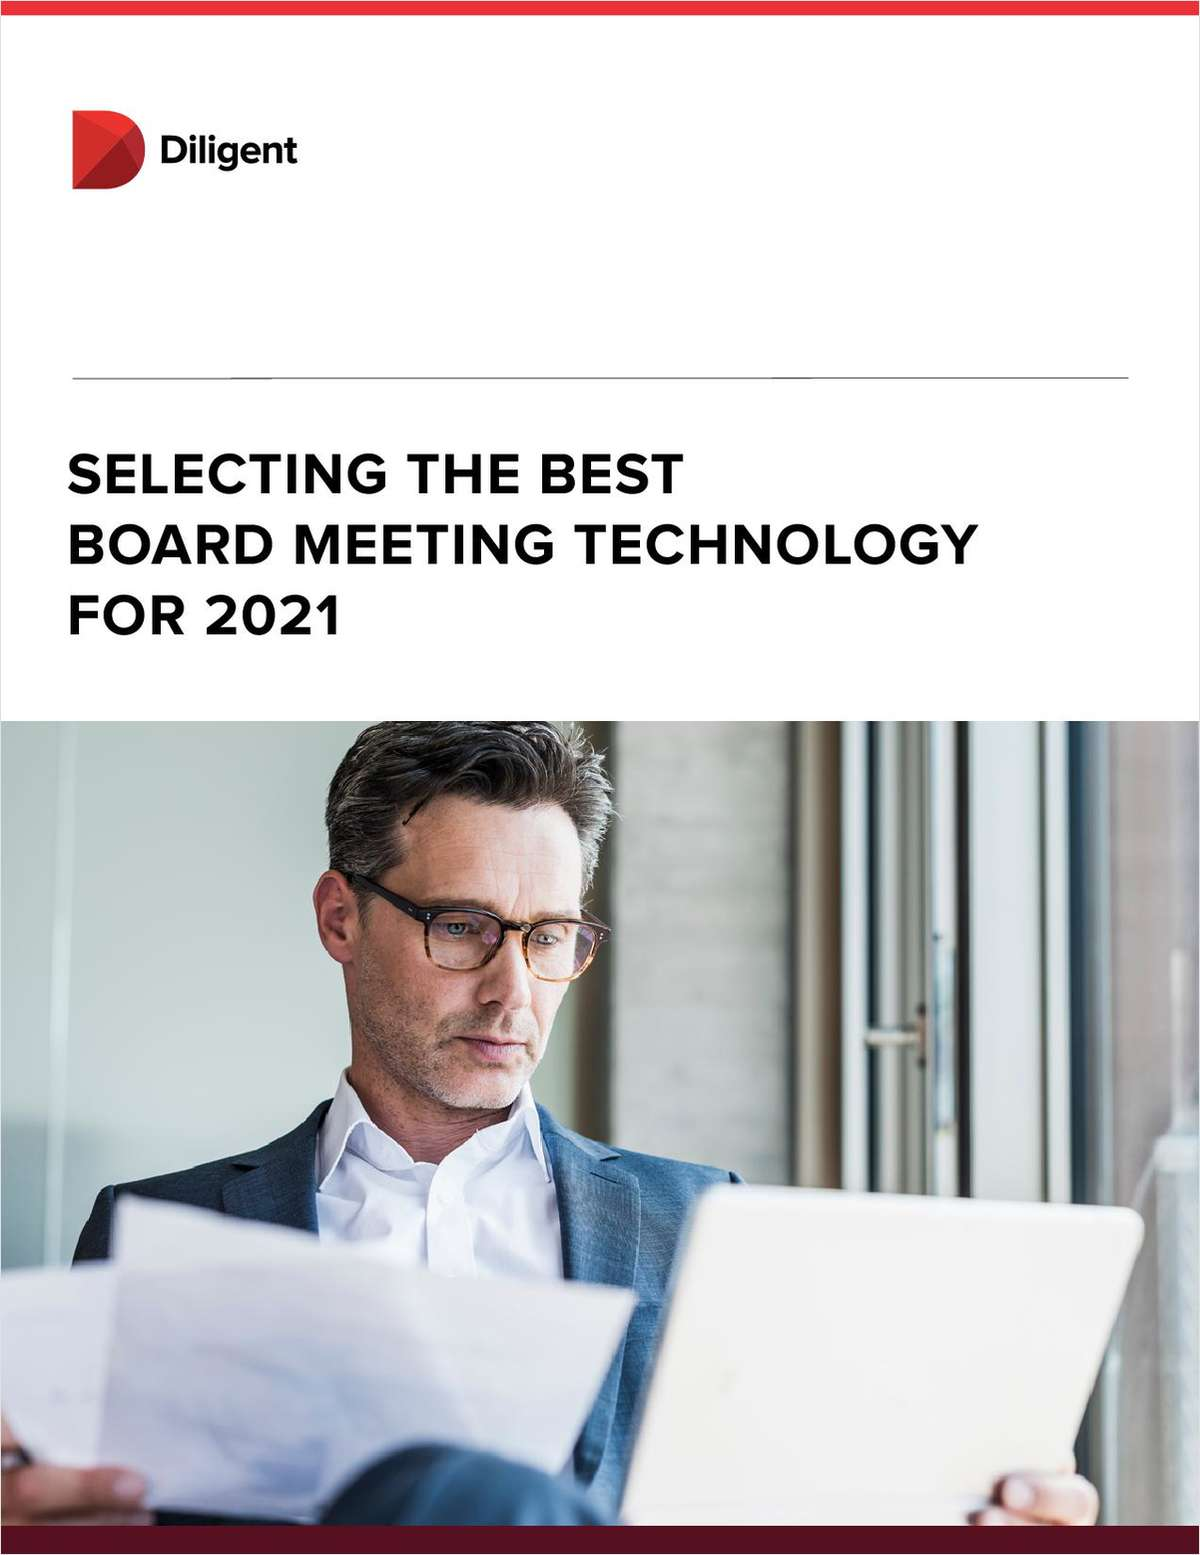 Selecting the Best Board Meeting Technology for 2021